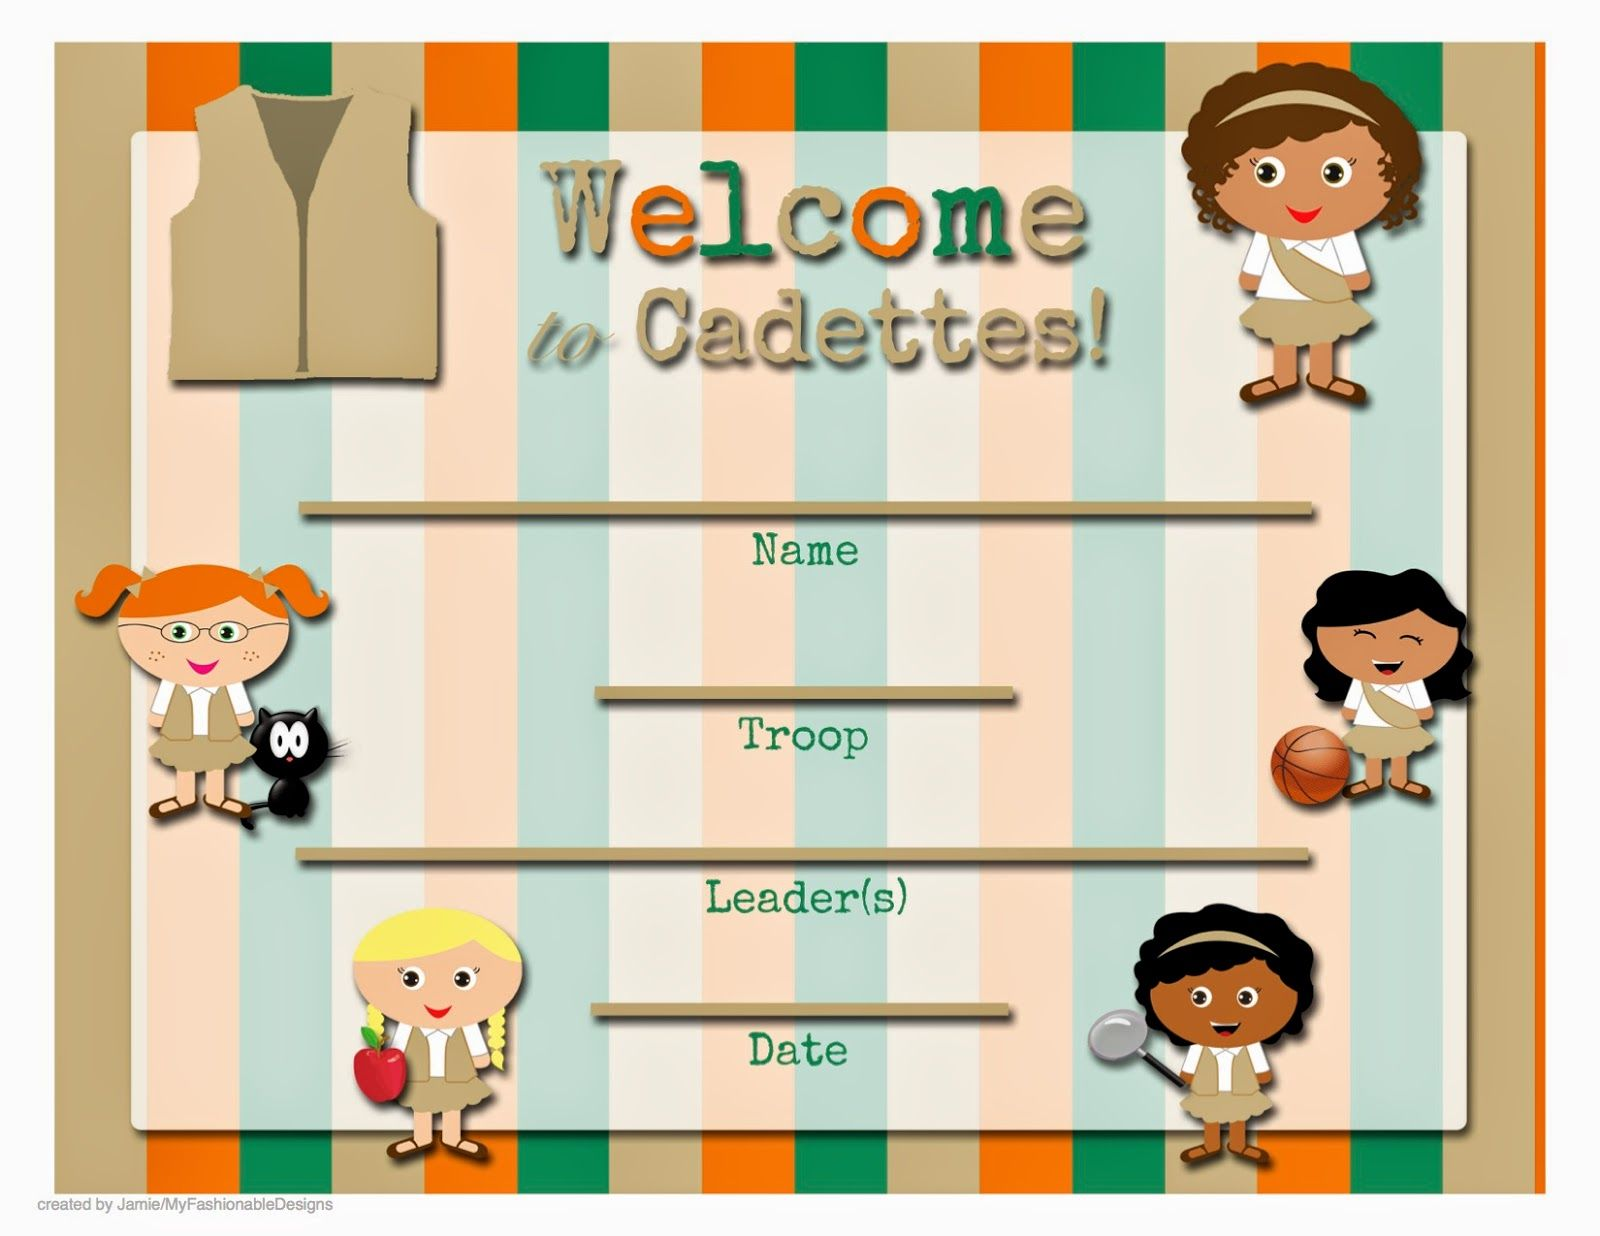 Free Printable Welcome To The Troop Cadettes